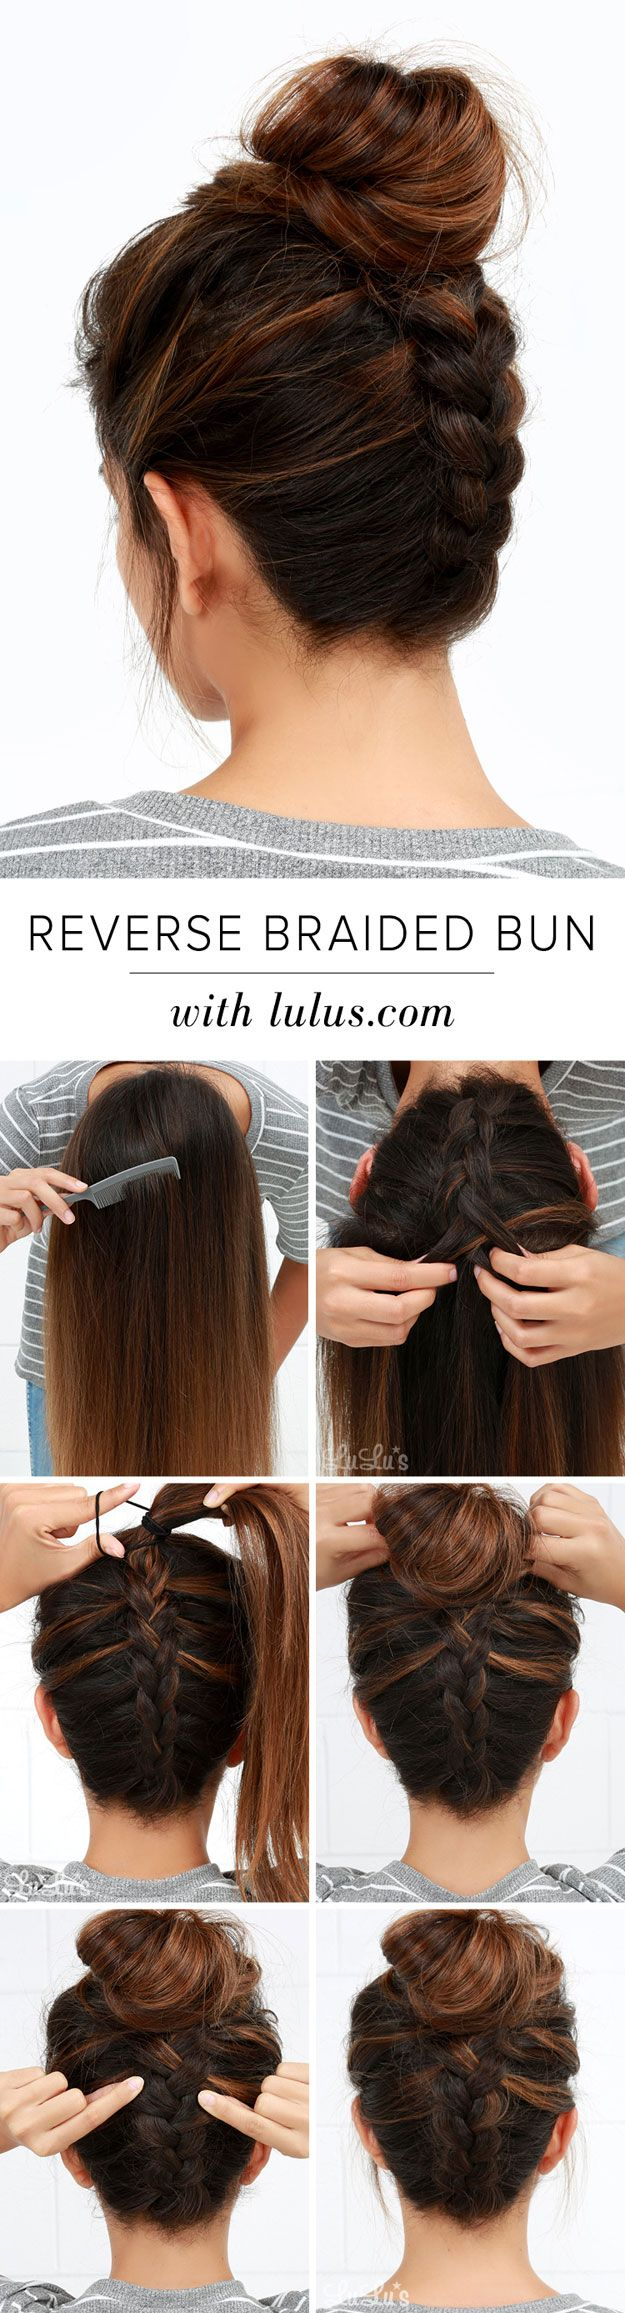 Gorgeous And Easy Hairstyles Tutorial For Women With Medium Shoulder Length To Long Hair These Hairstyles Are Gre Long Hair Styles Hair Styles Easy Hairstyles